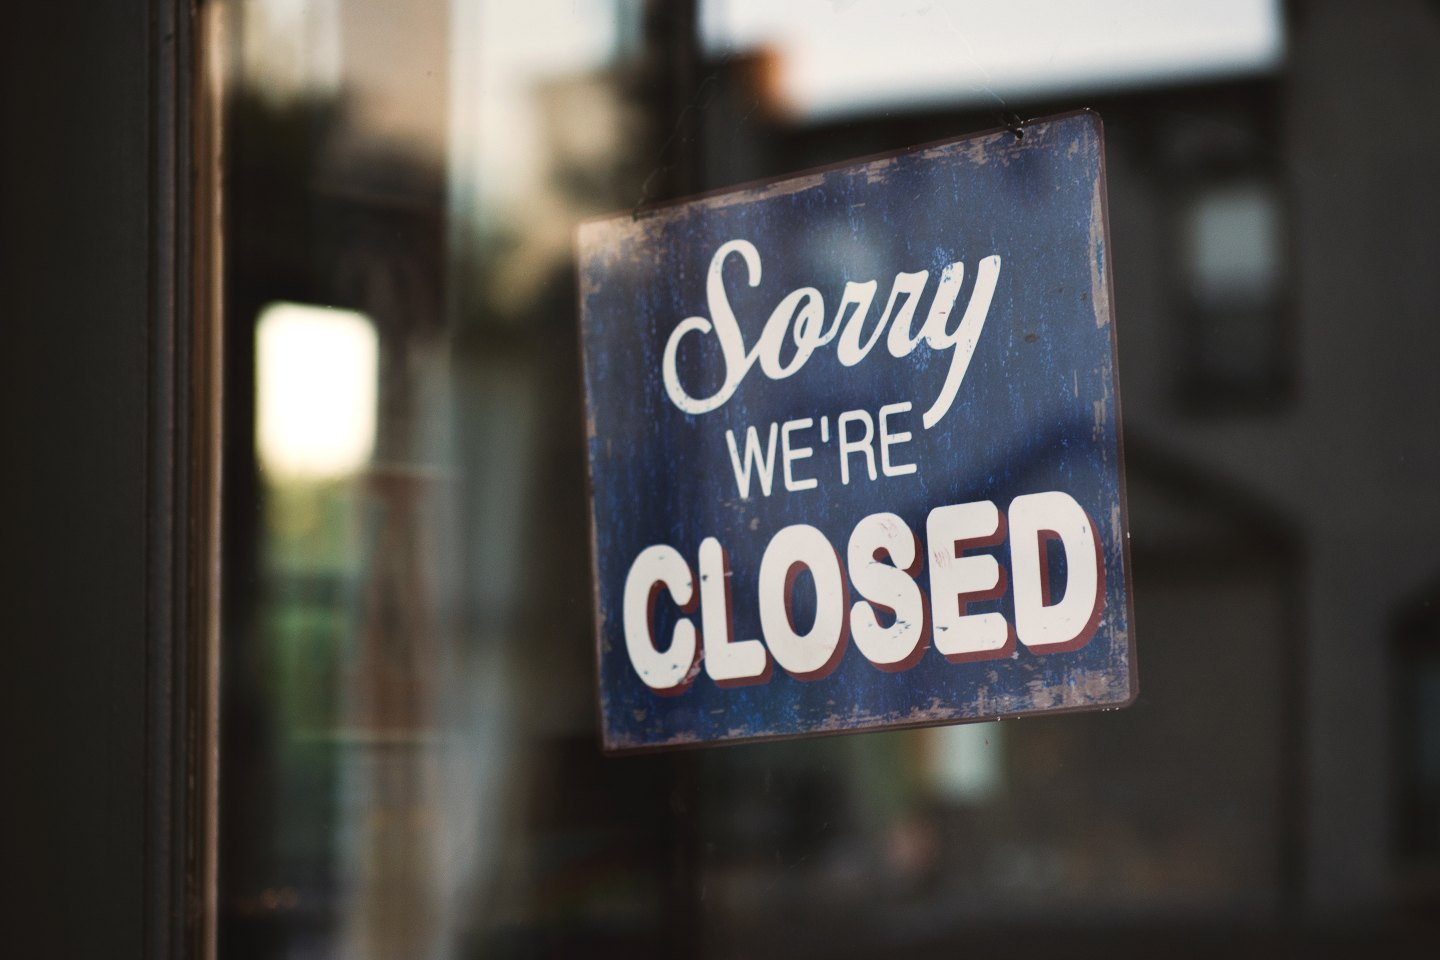 Sorry - we are closed